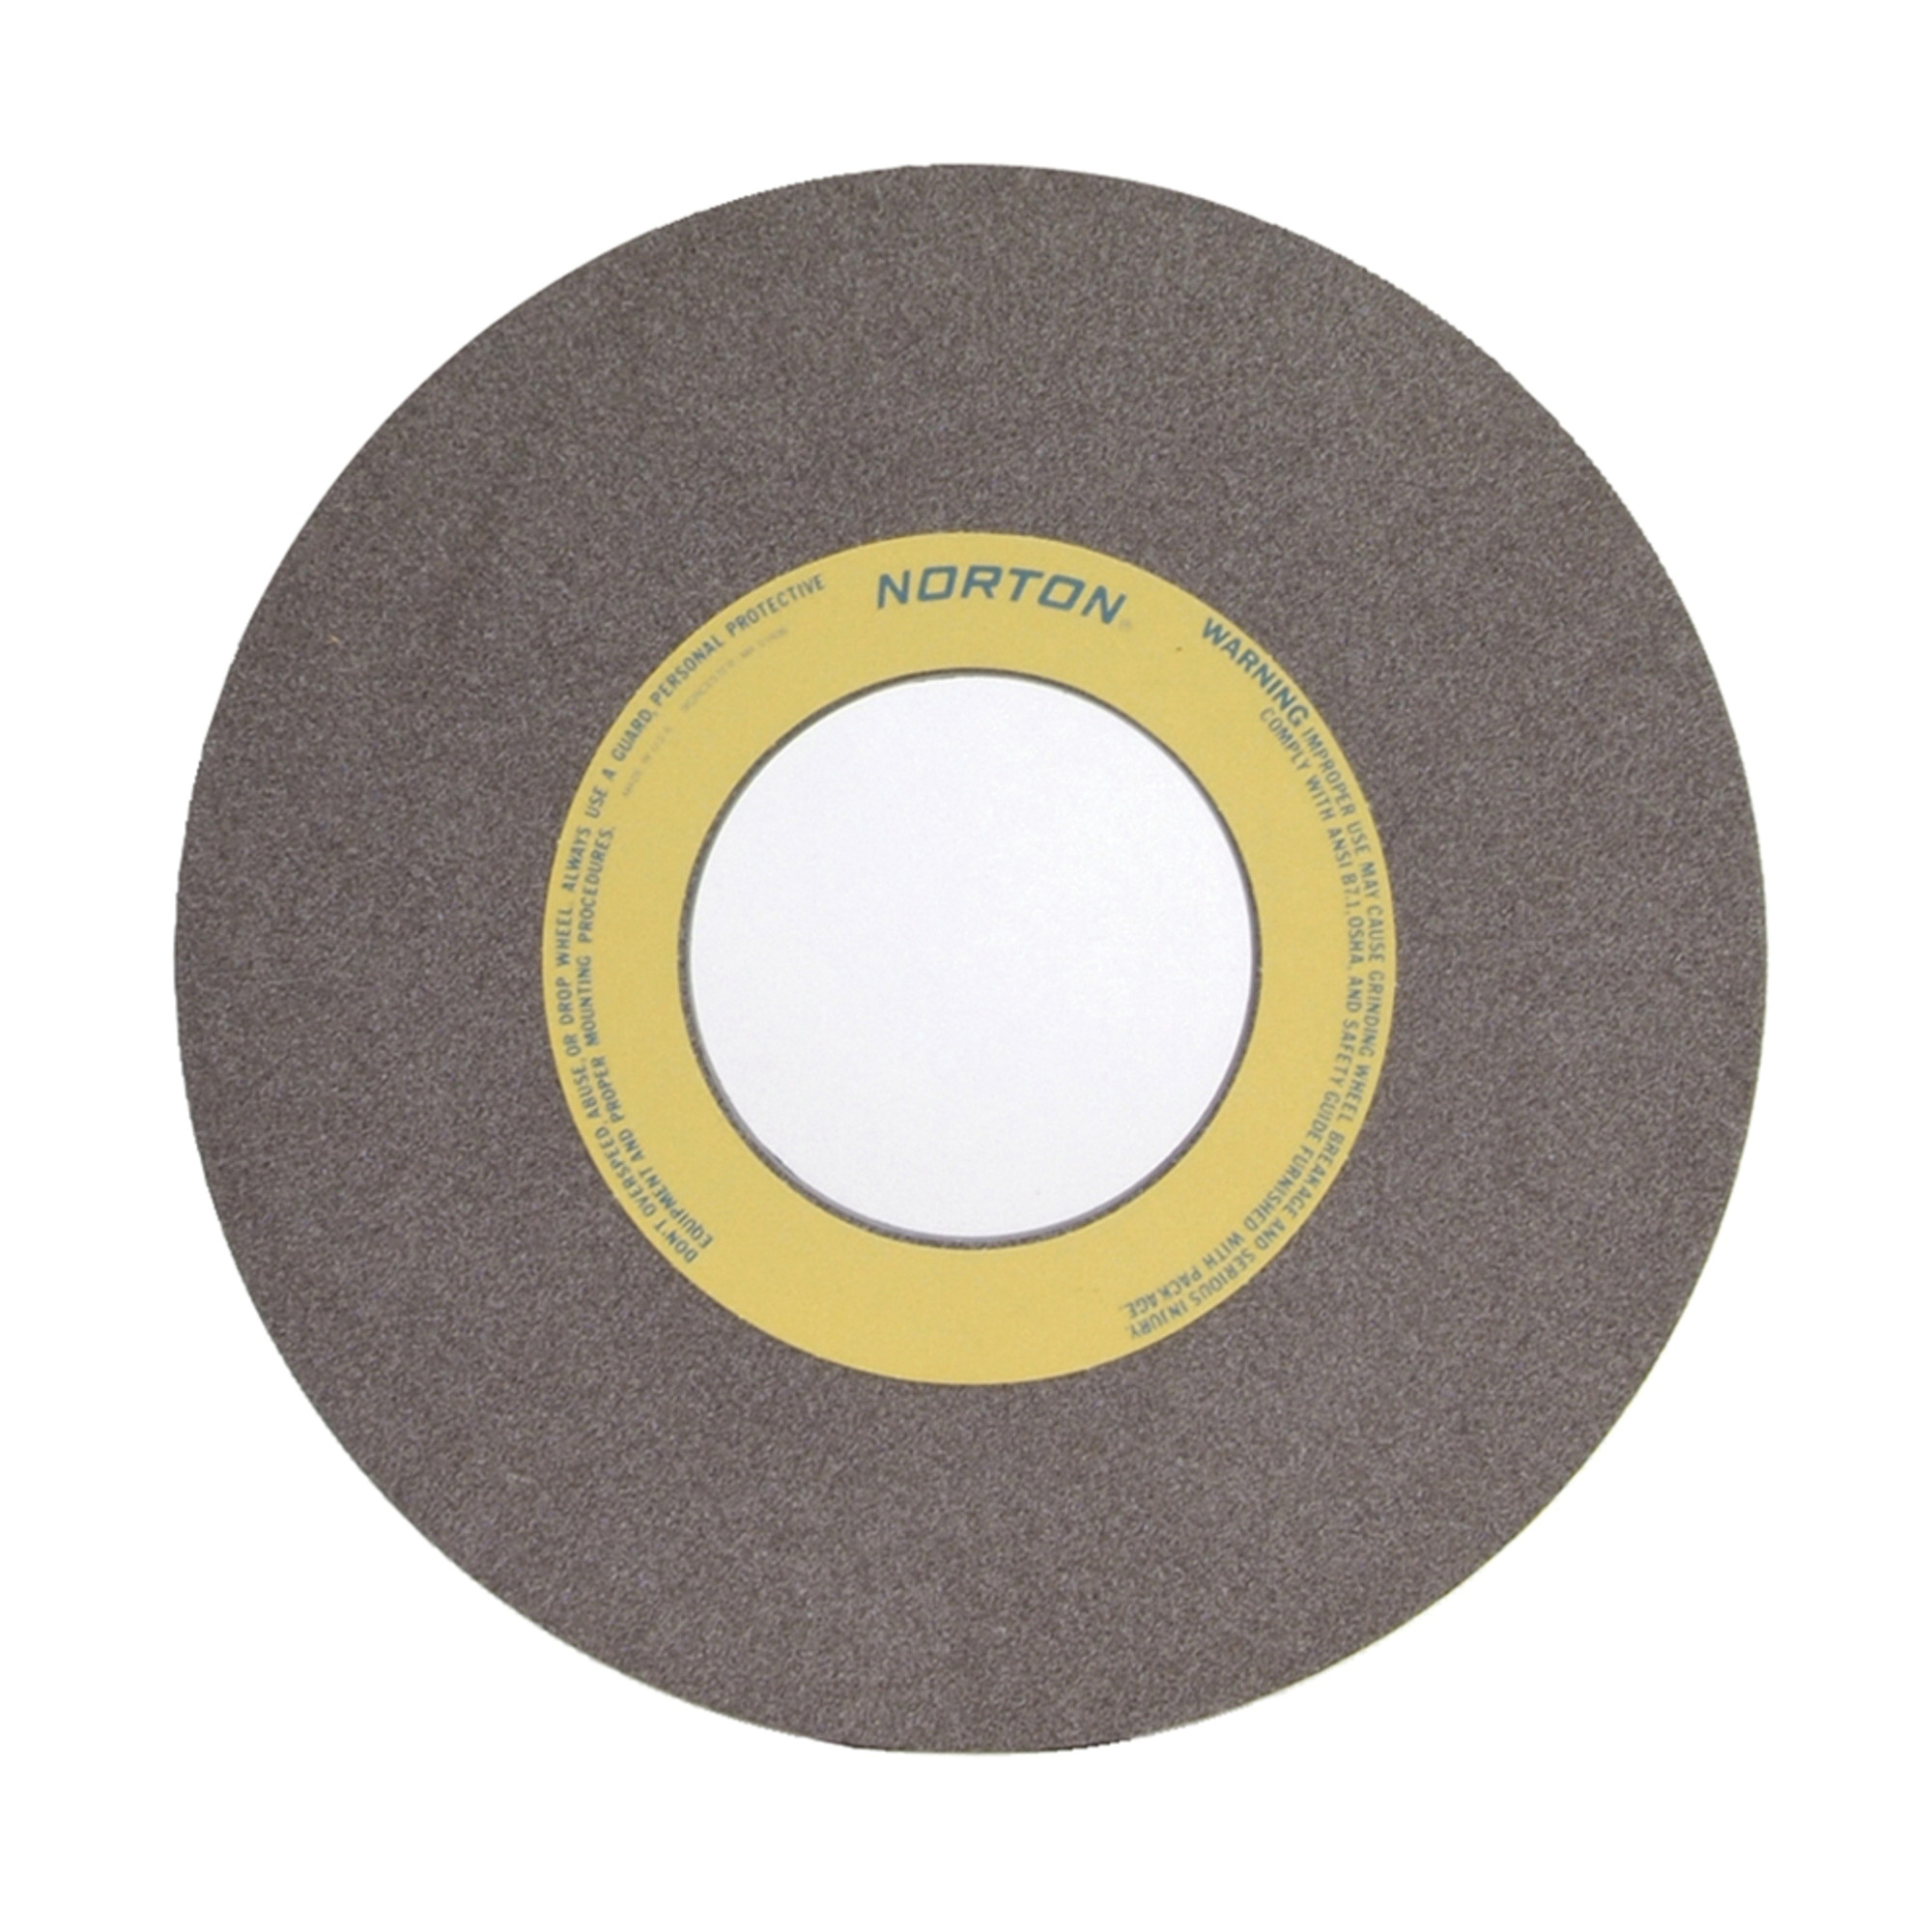 Norton® 66253364070 57A Straight Toolroom Wheel, 14 in Dia x 1 in THK, 5 in Center Hole, 80 Grit, Aluminum Oxide Abrasive